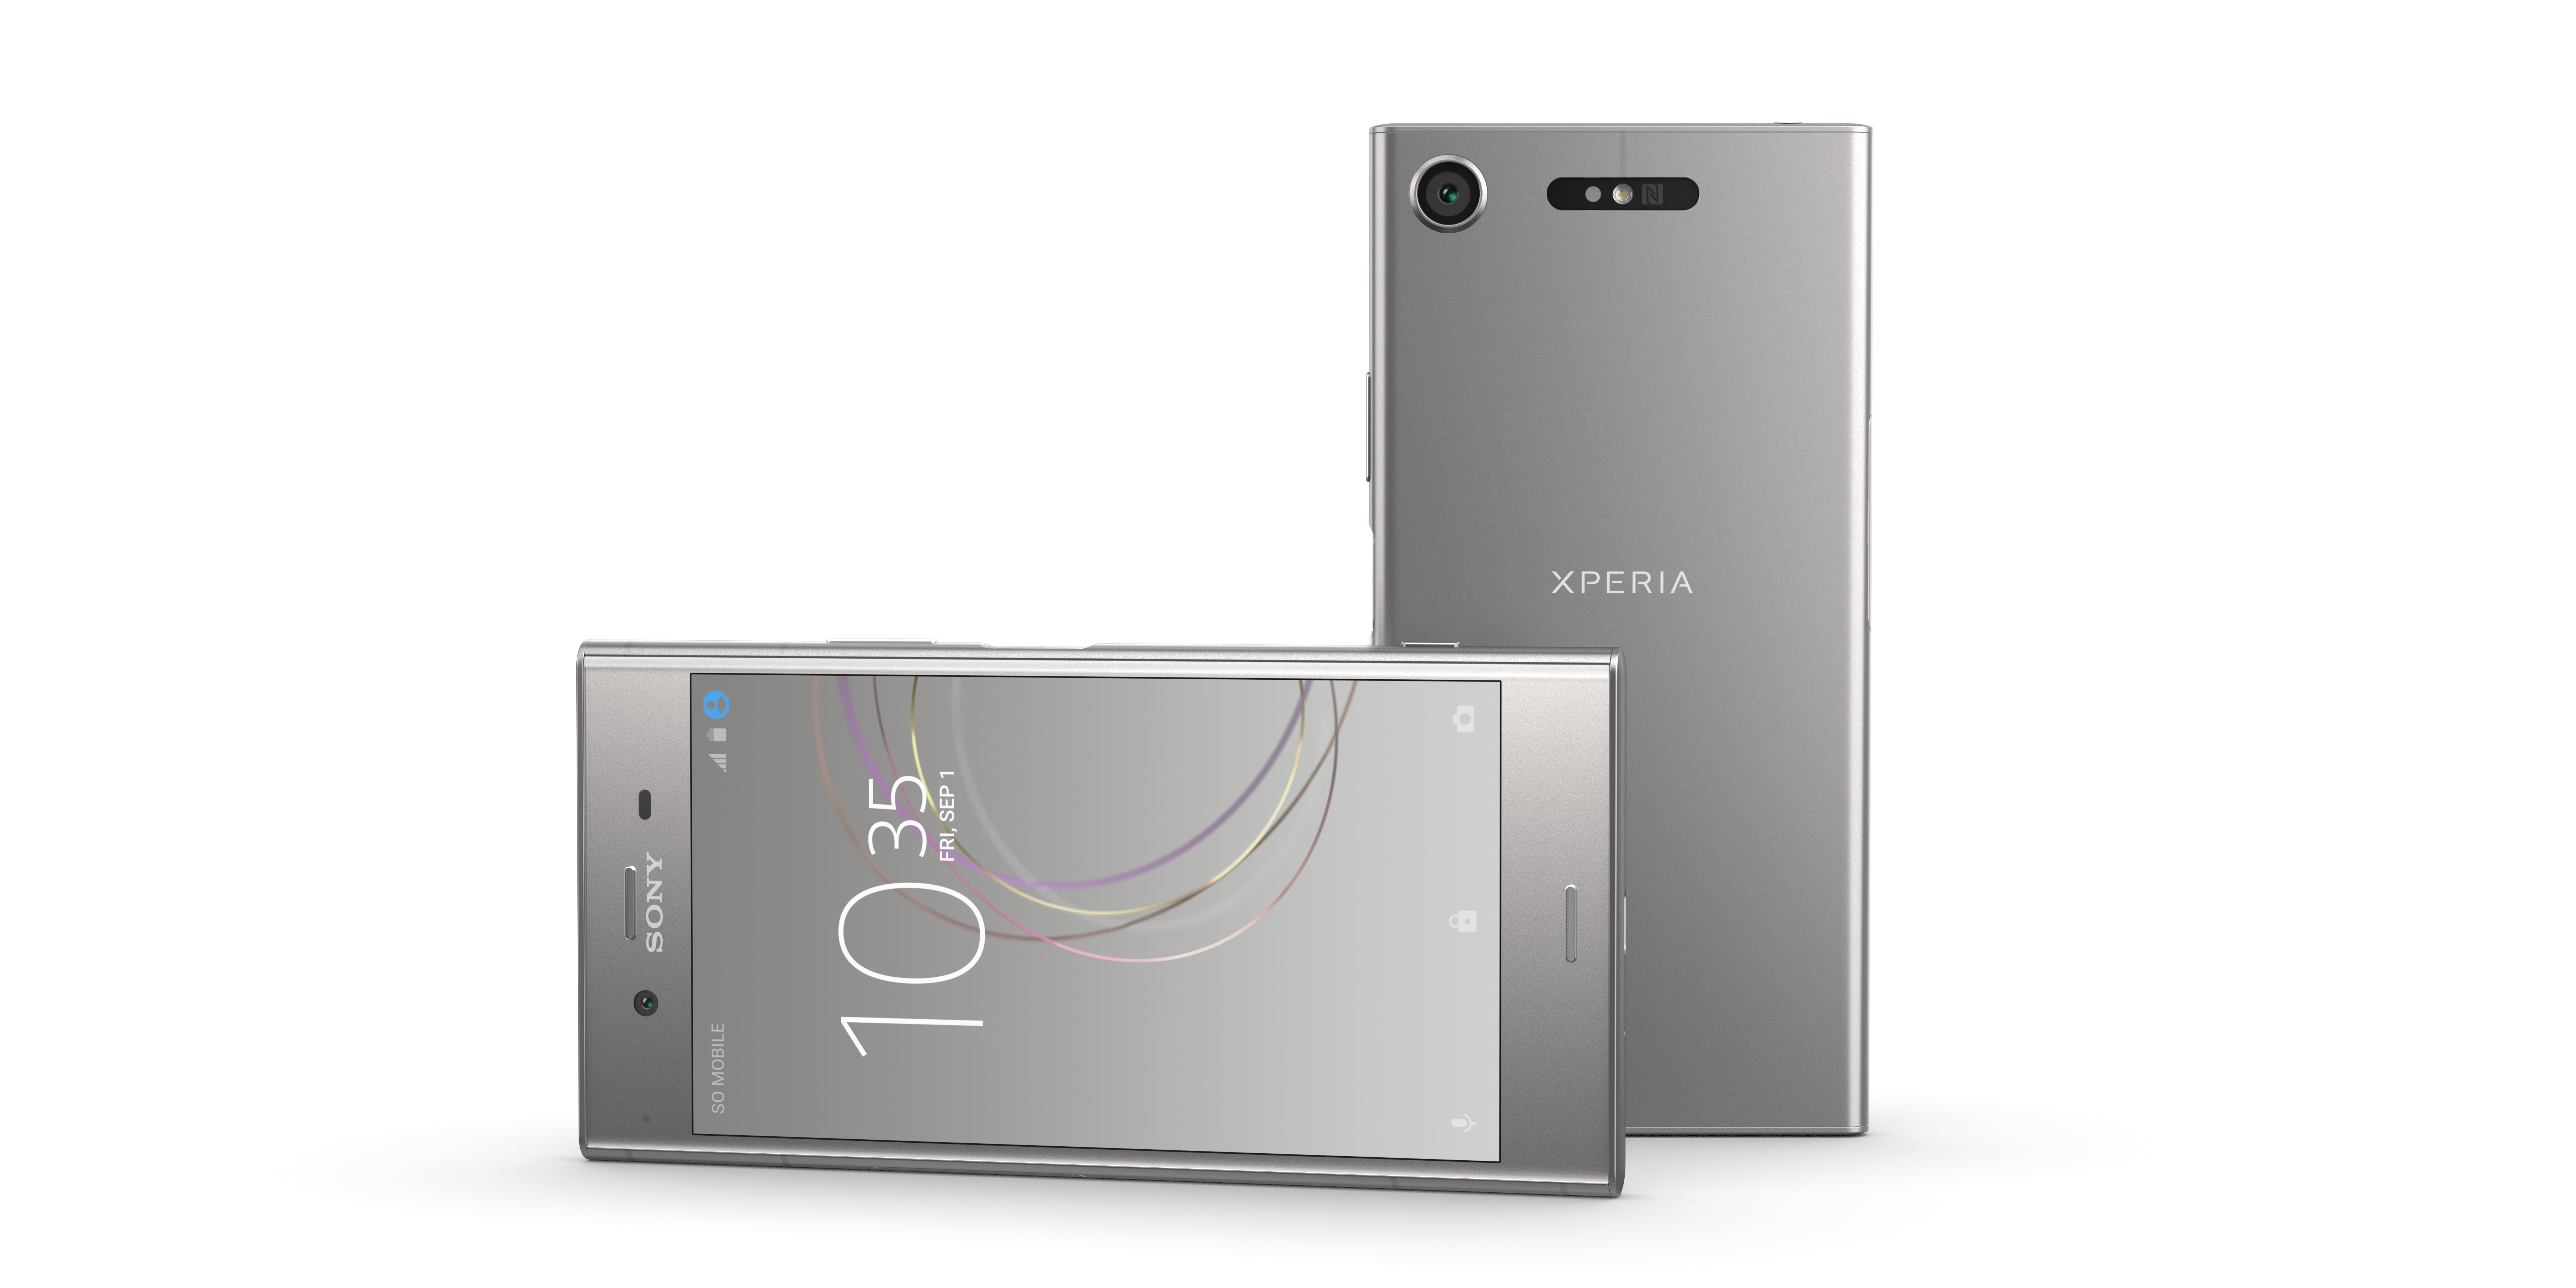 Sony Xperia XZ1 and Xperia XZ1 Compact Review